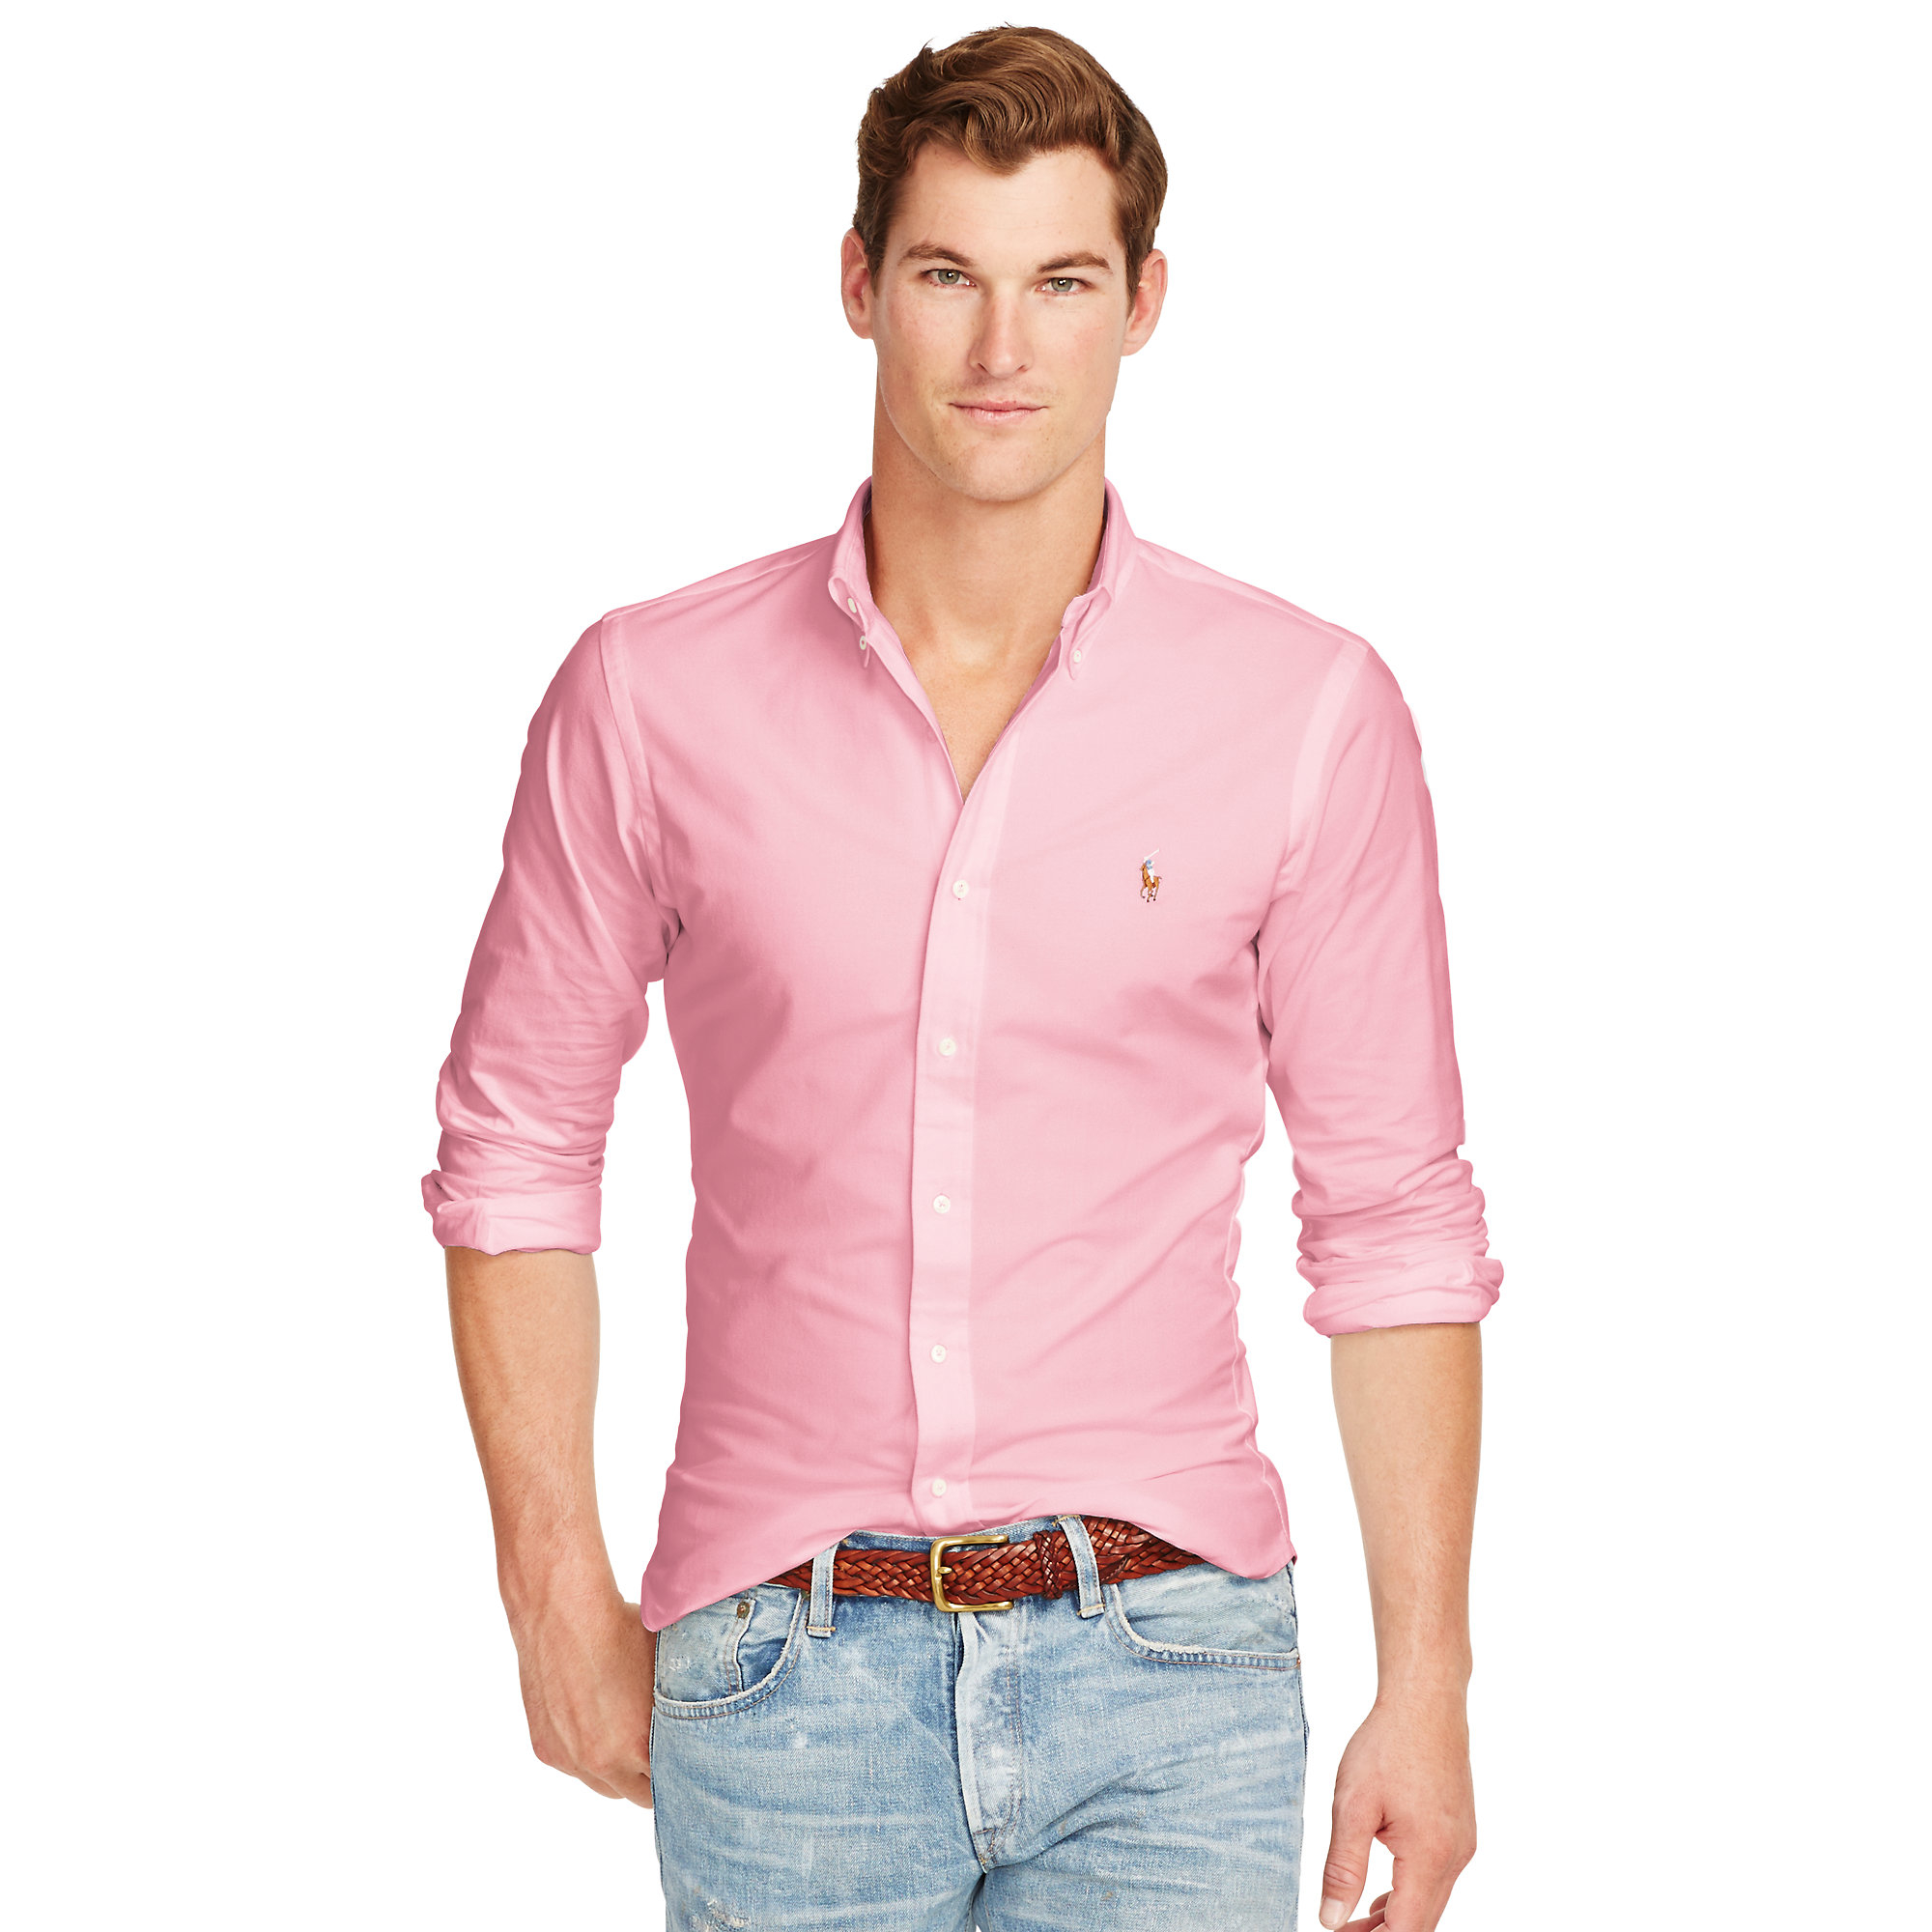 d0c4c4d5bd1d3 Lyst - Polo Ralph Lauren Slim-fit Stretch Oxford Shirt in Pink for Men